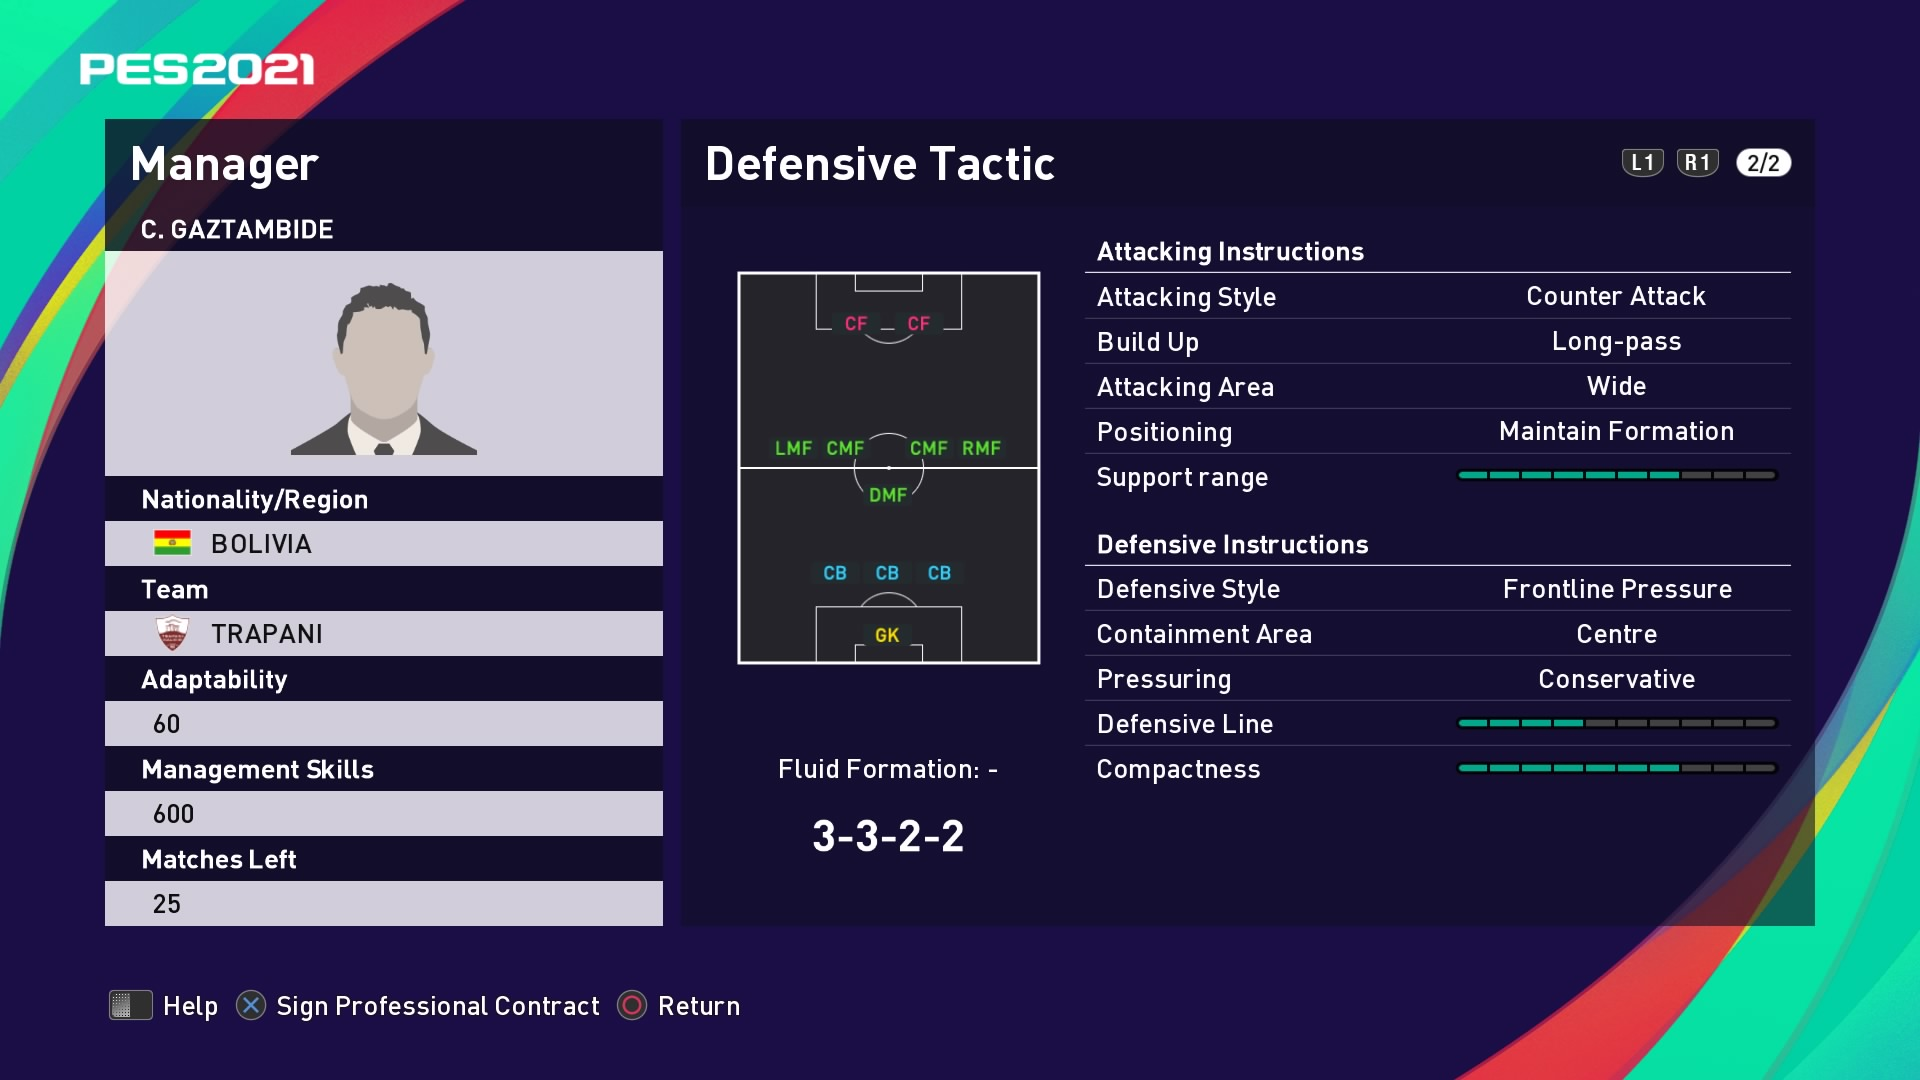 C. Gaztambide Defensive Tactic in PES 2021 myClub